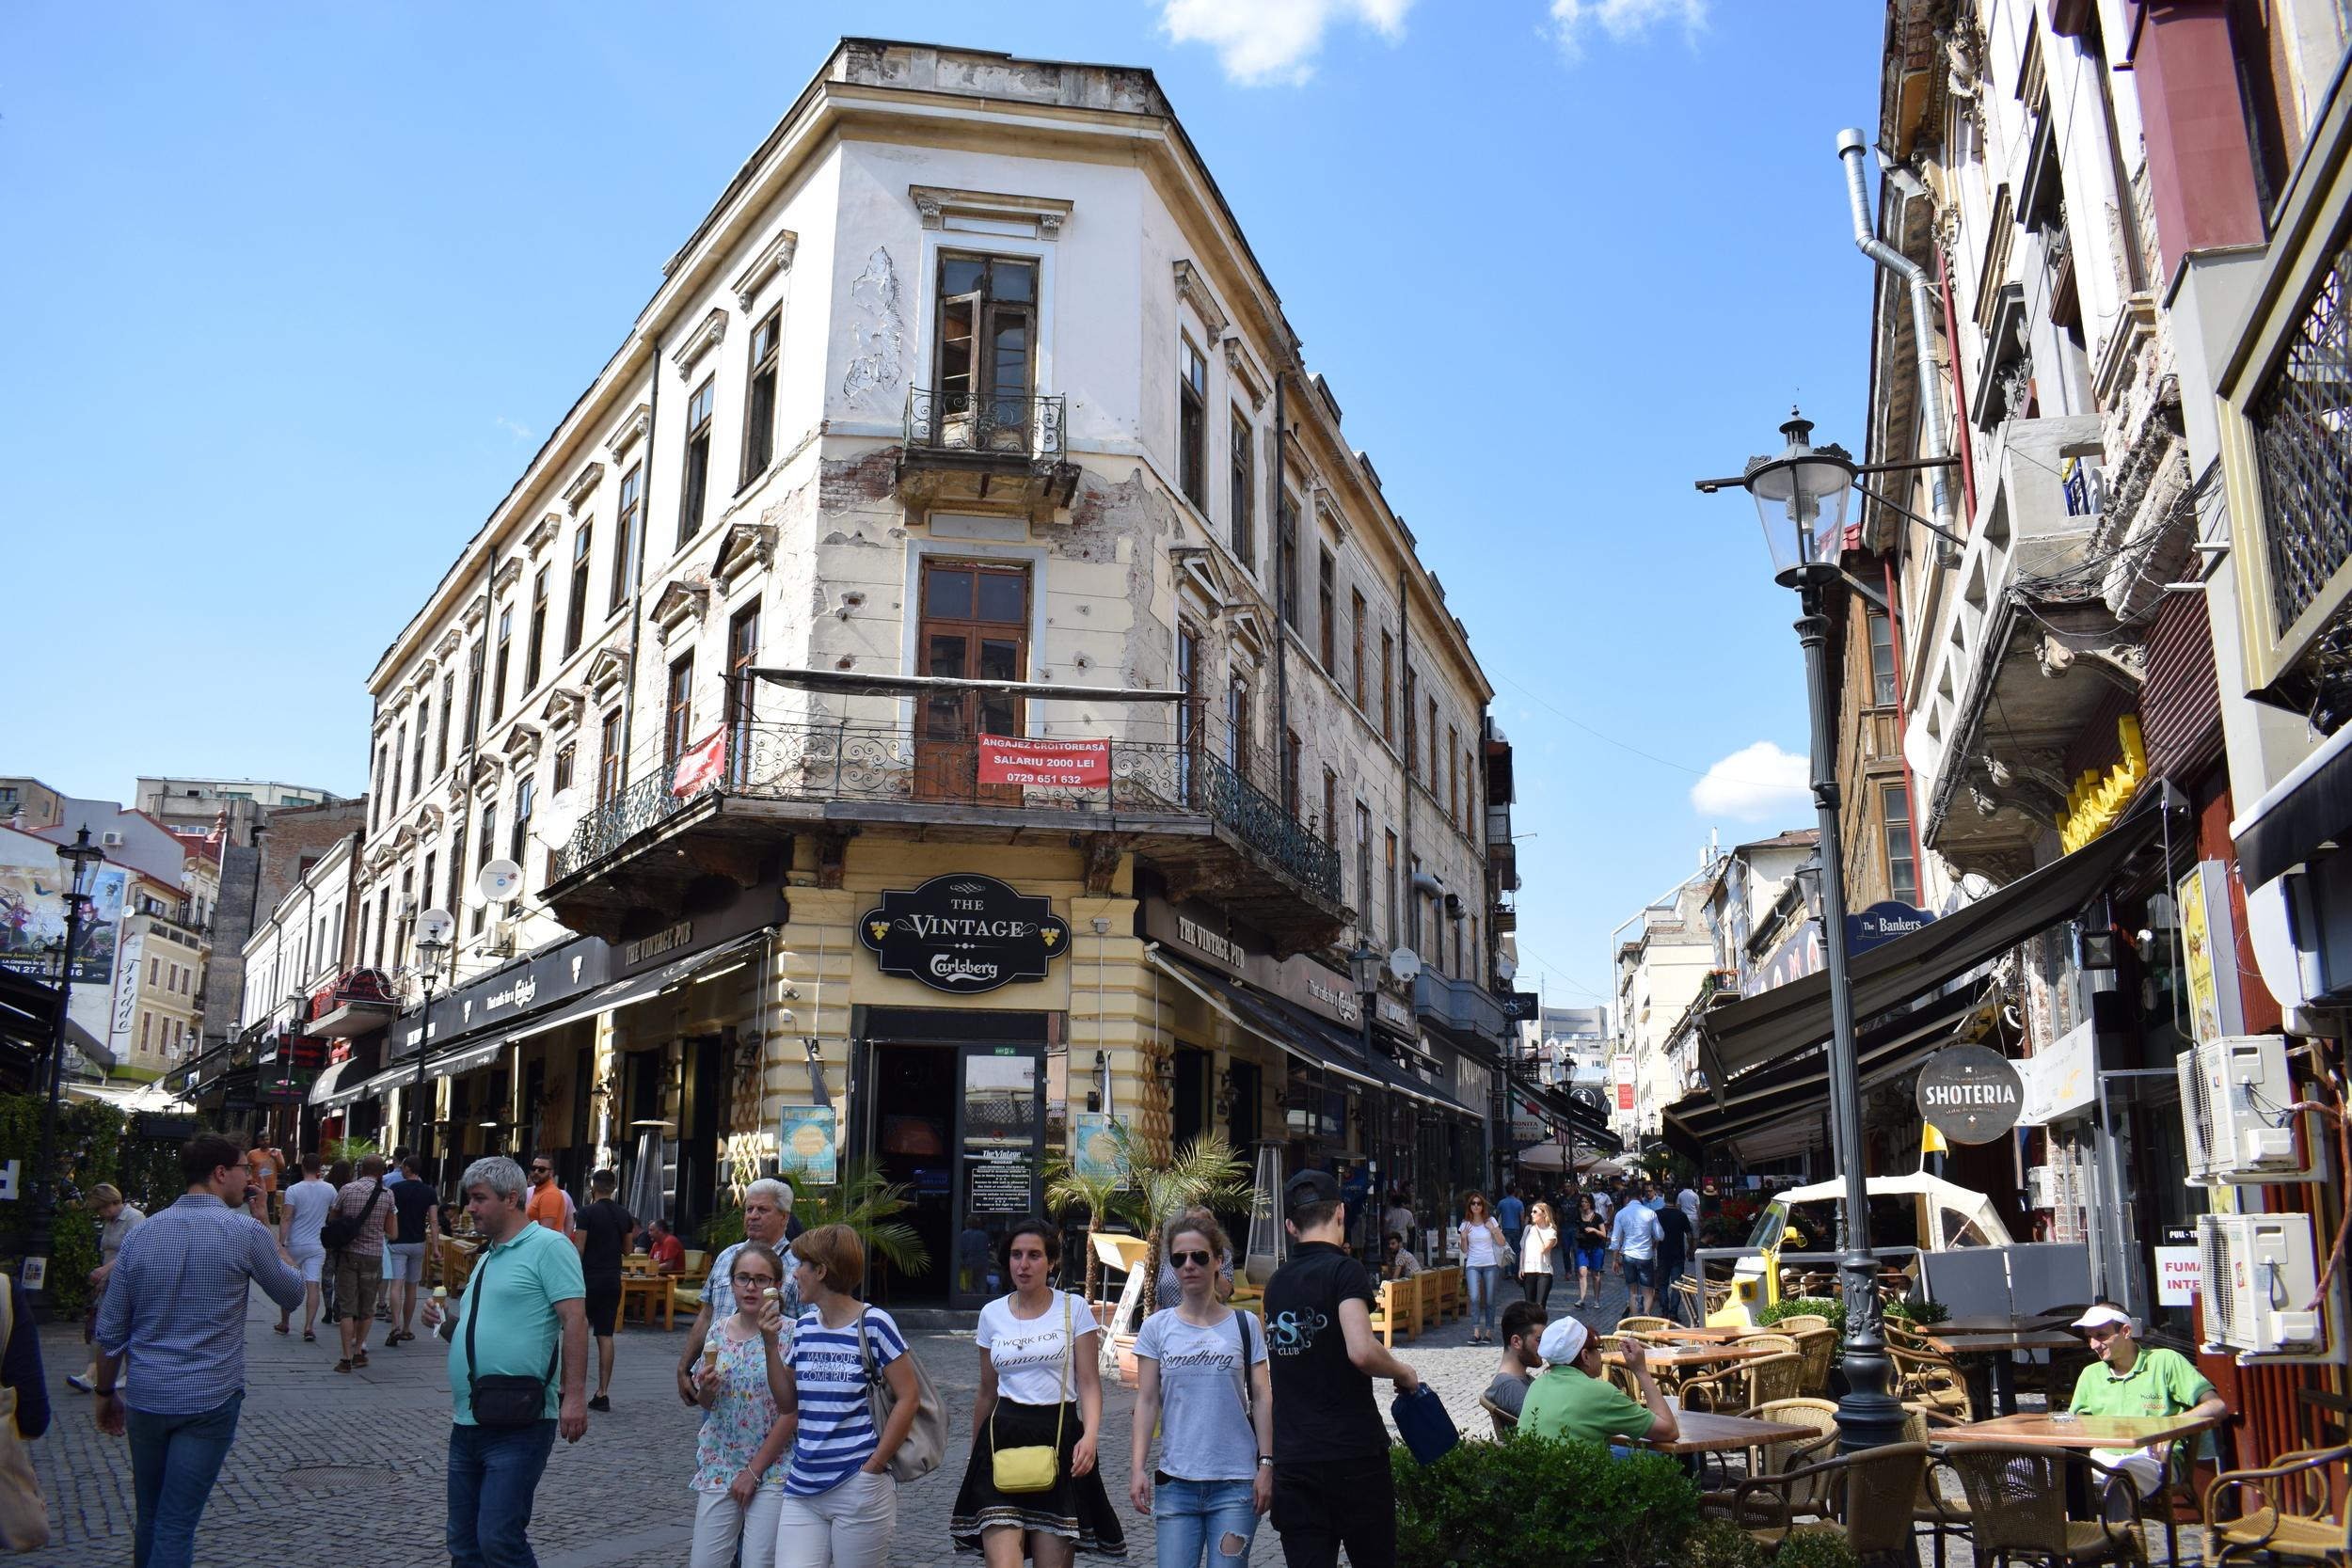 Two of the main streets for nightlife in Bucharest.